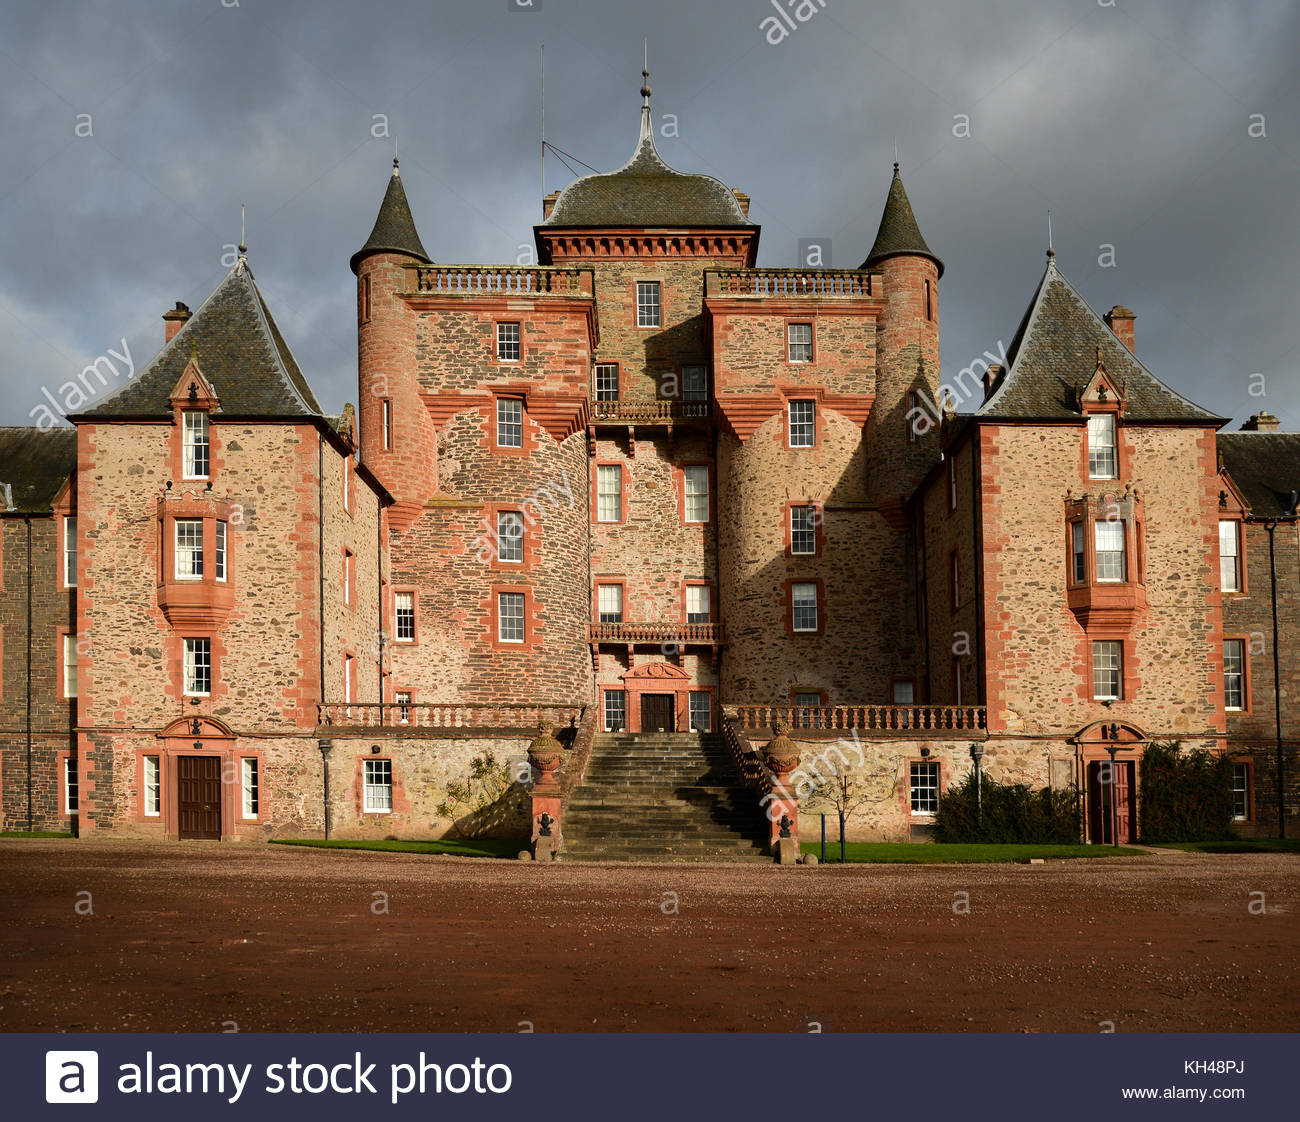 Thirlestane Castle The Borders and the Southwest, Thirlestane Castle Stock Photos & Thirlestane Castle Stock Images ...